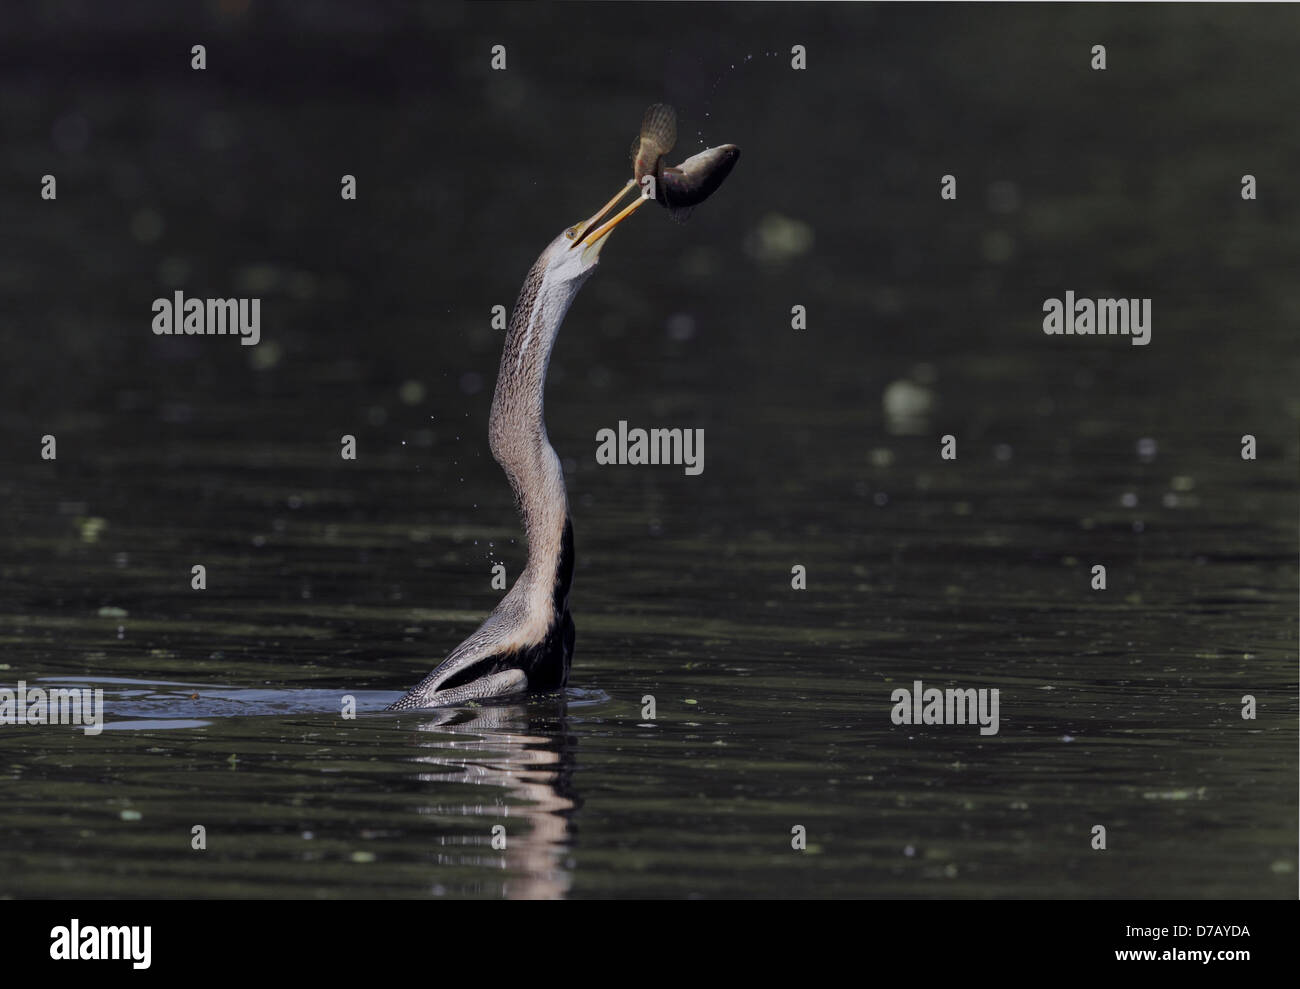 Darter snake bird with a catch - Stock Image